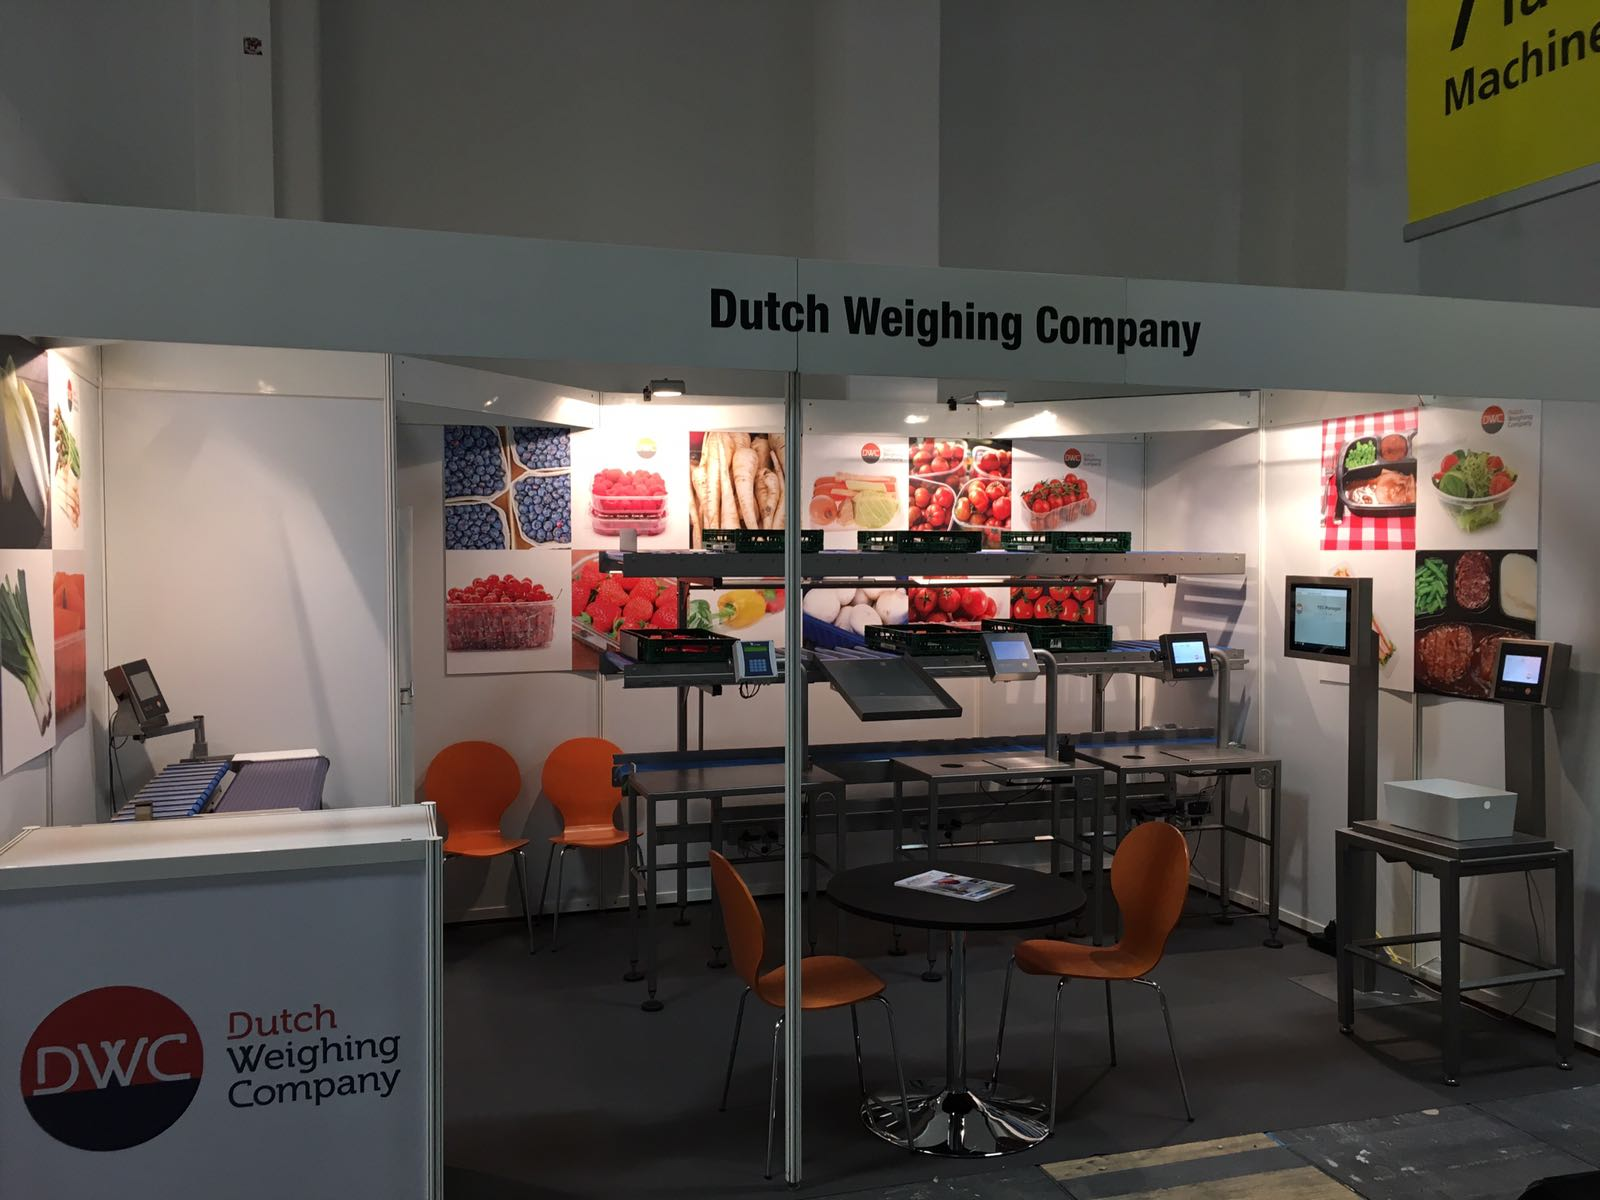 Visit Dutch Weighing Company at the FRUIT LOGISTICA in Berlin this week